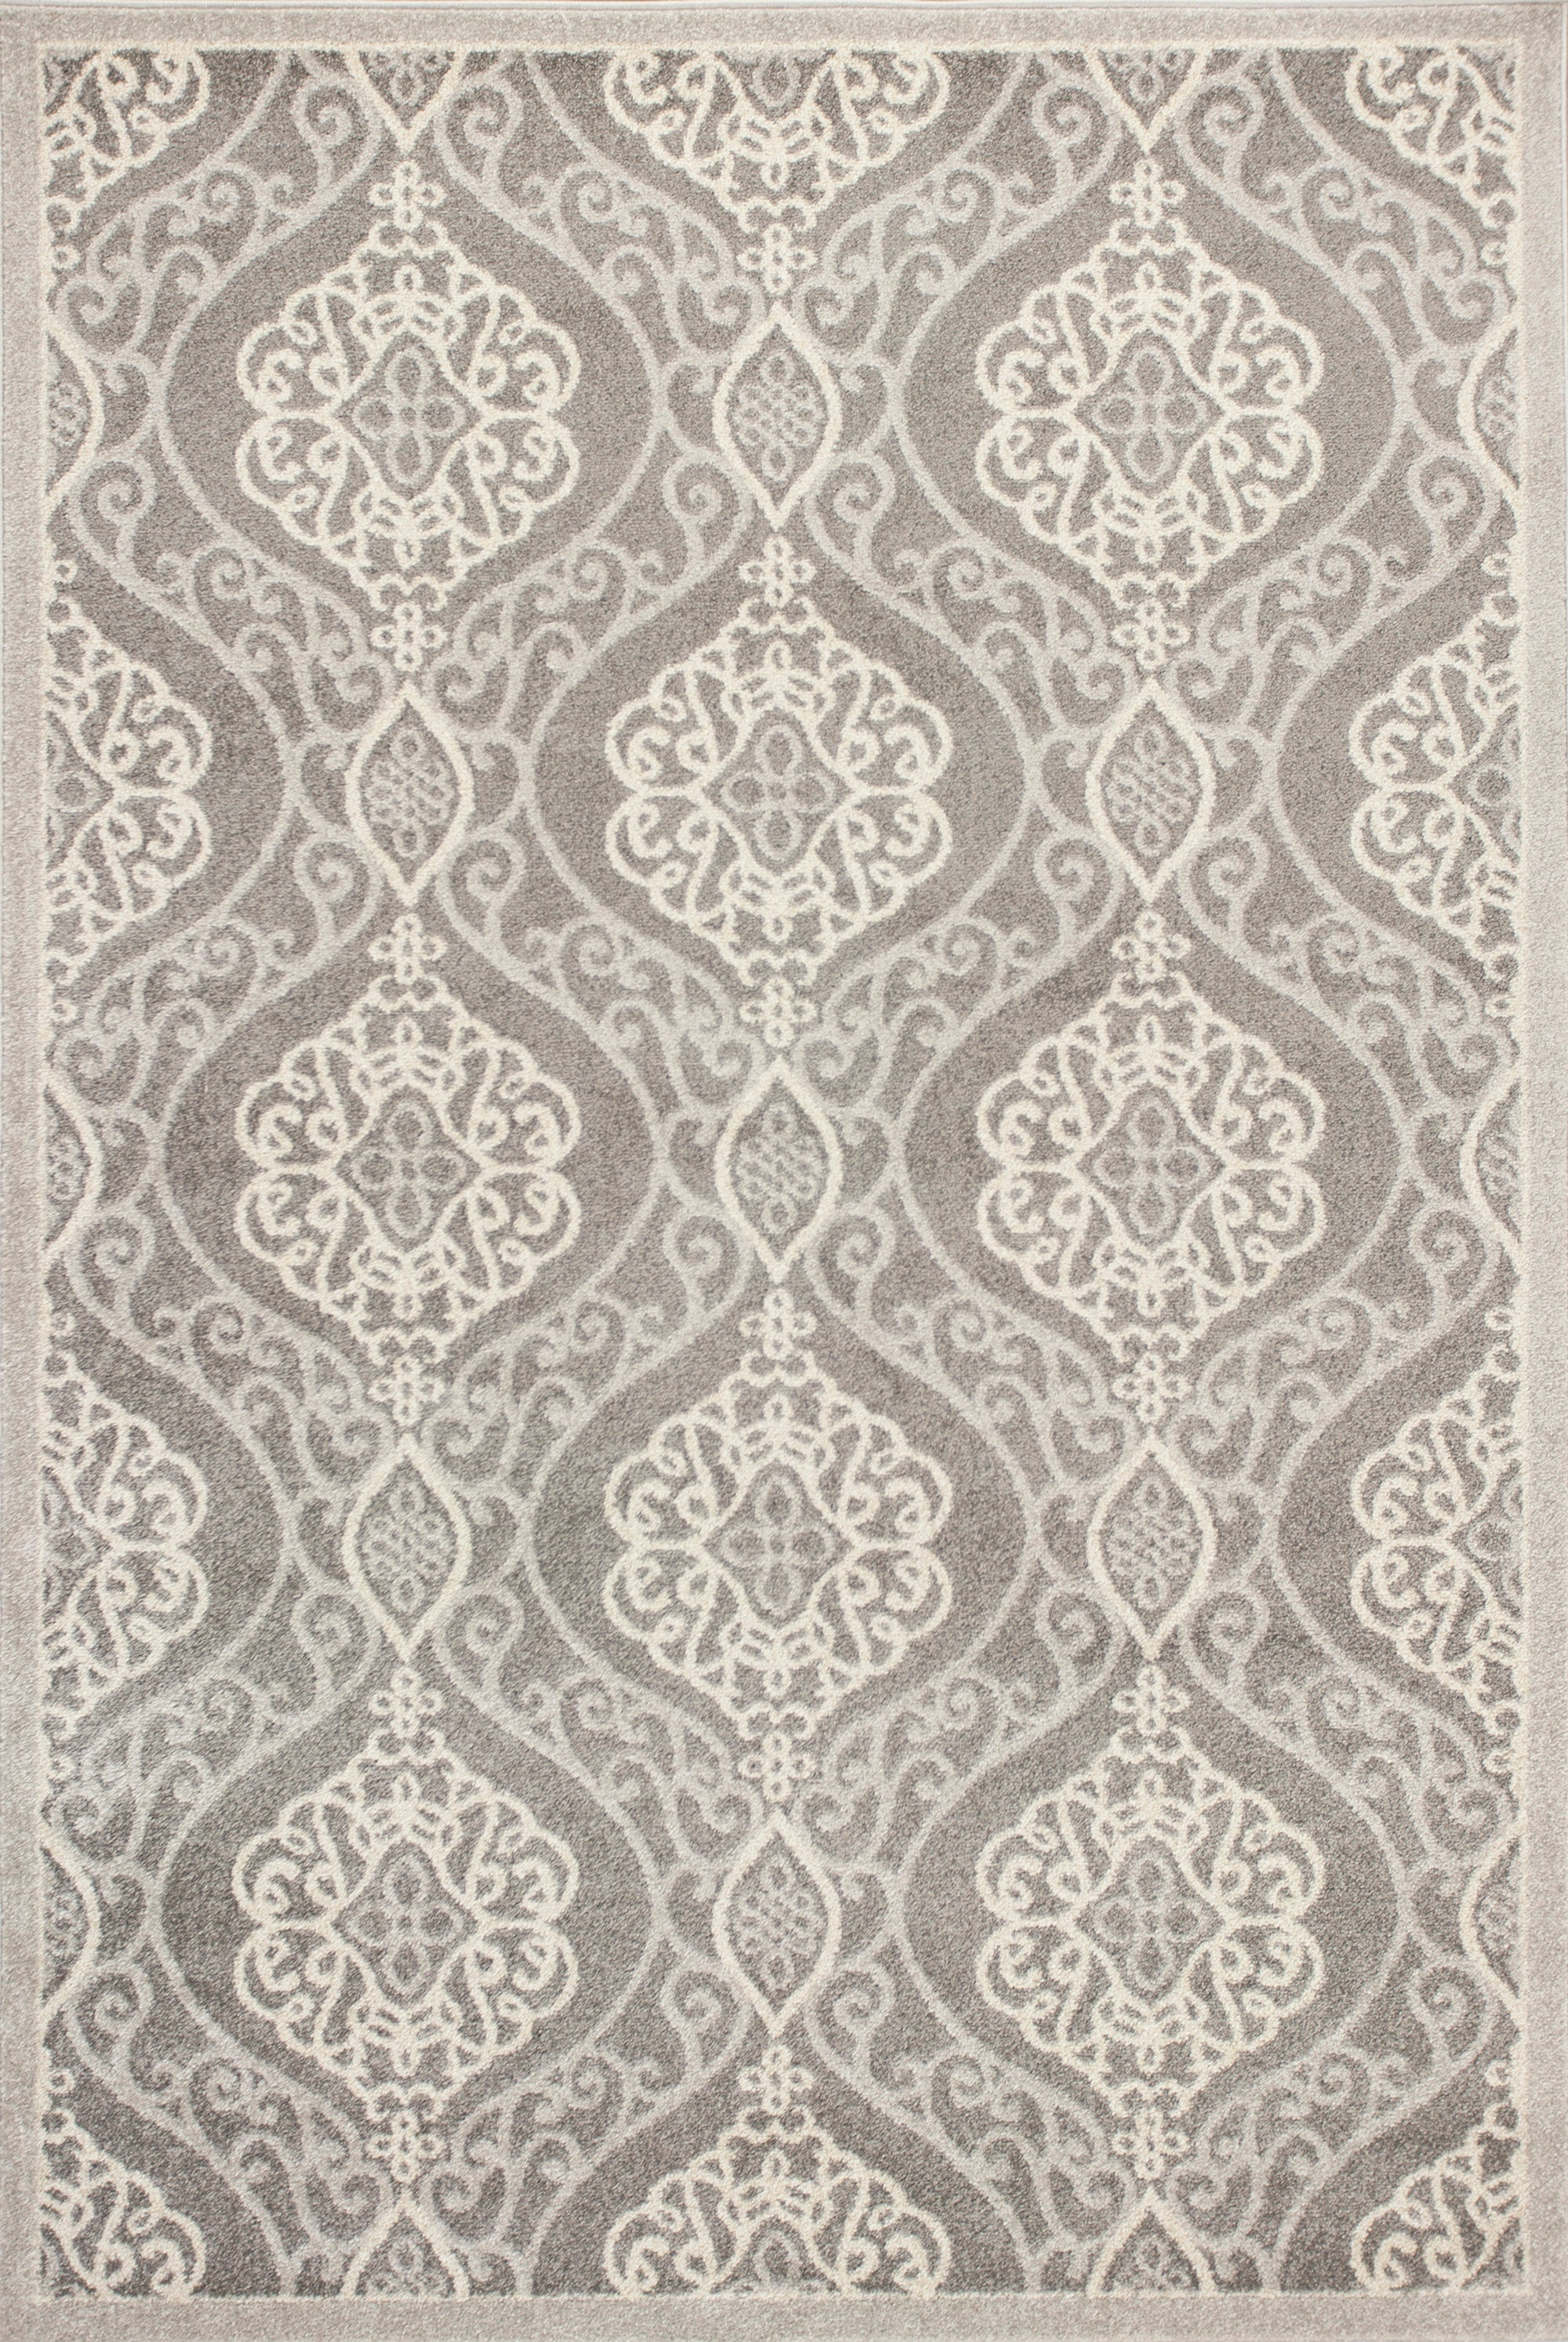 Kas Rugs Lucia 2759 Silver Mosaic Area Rug